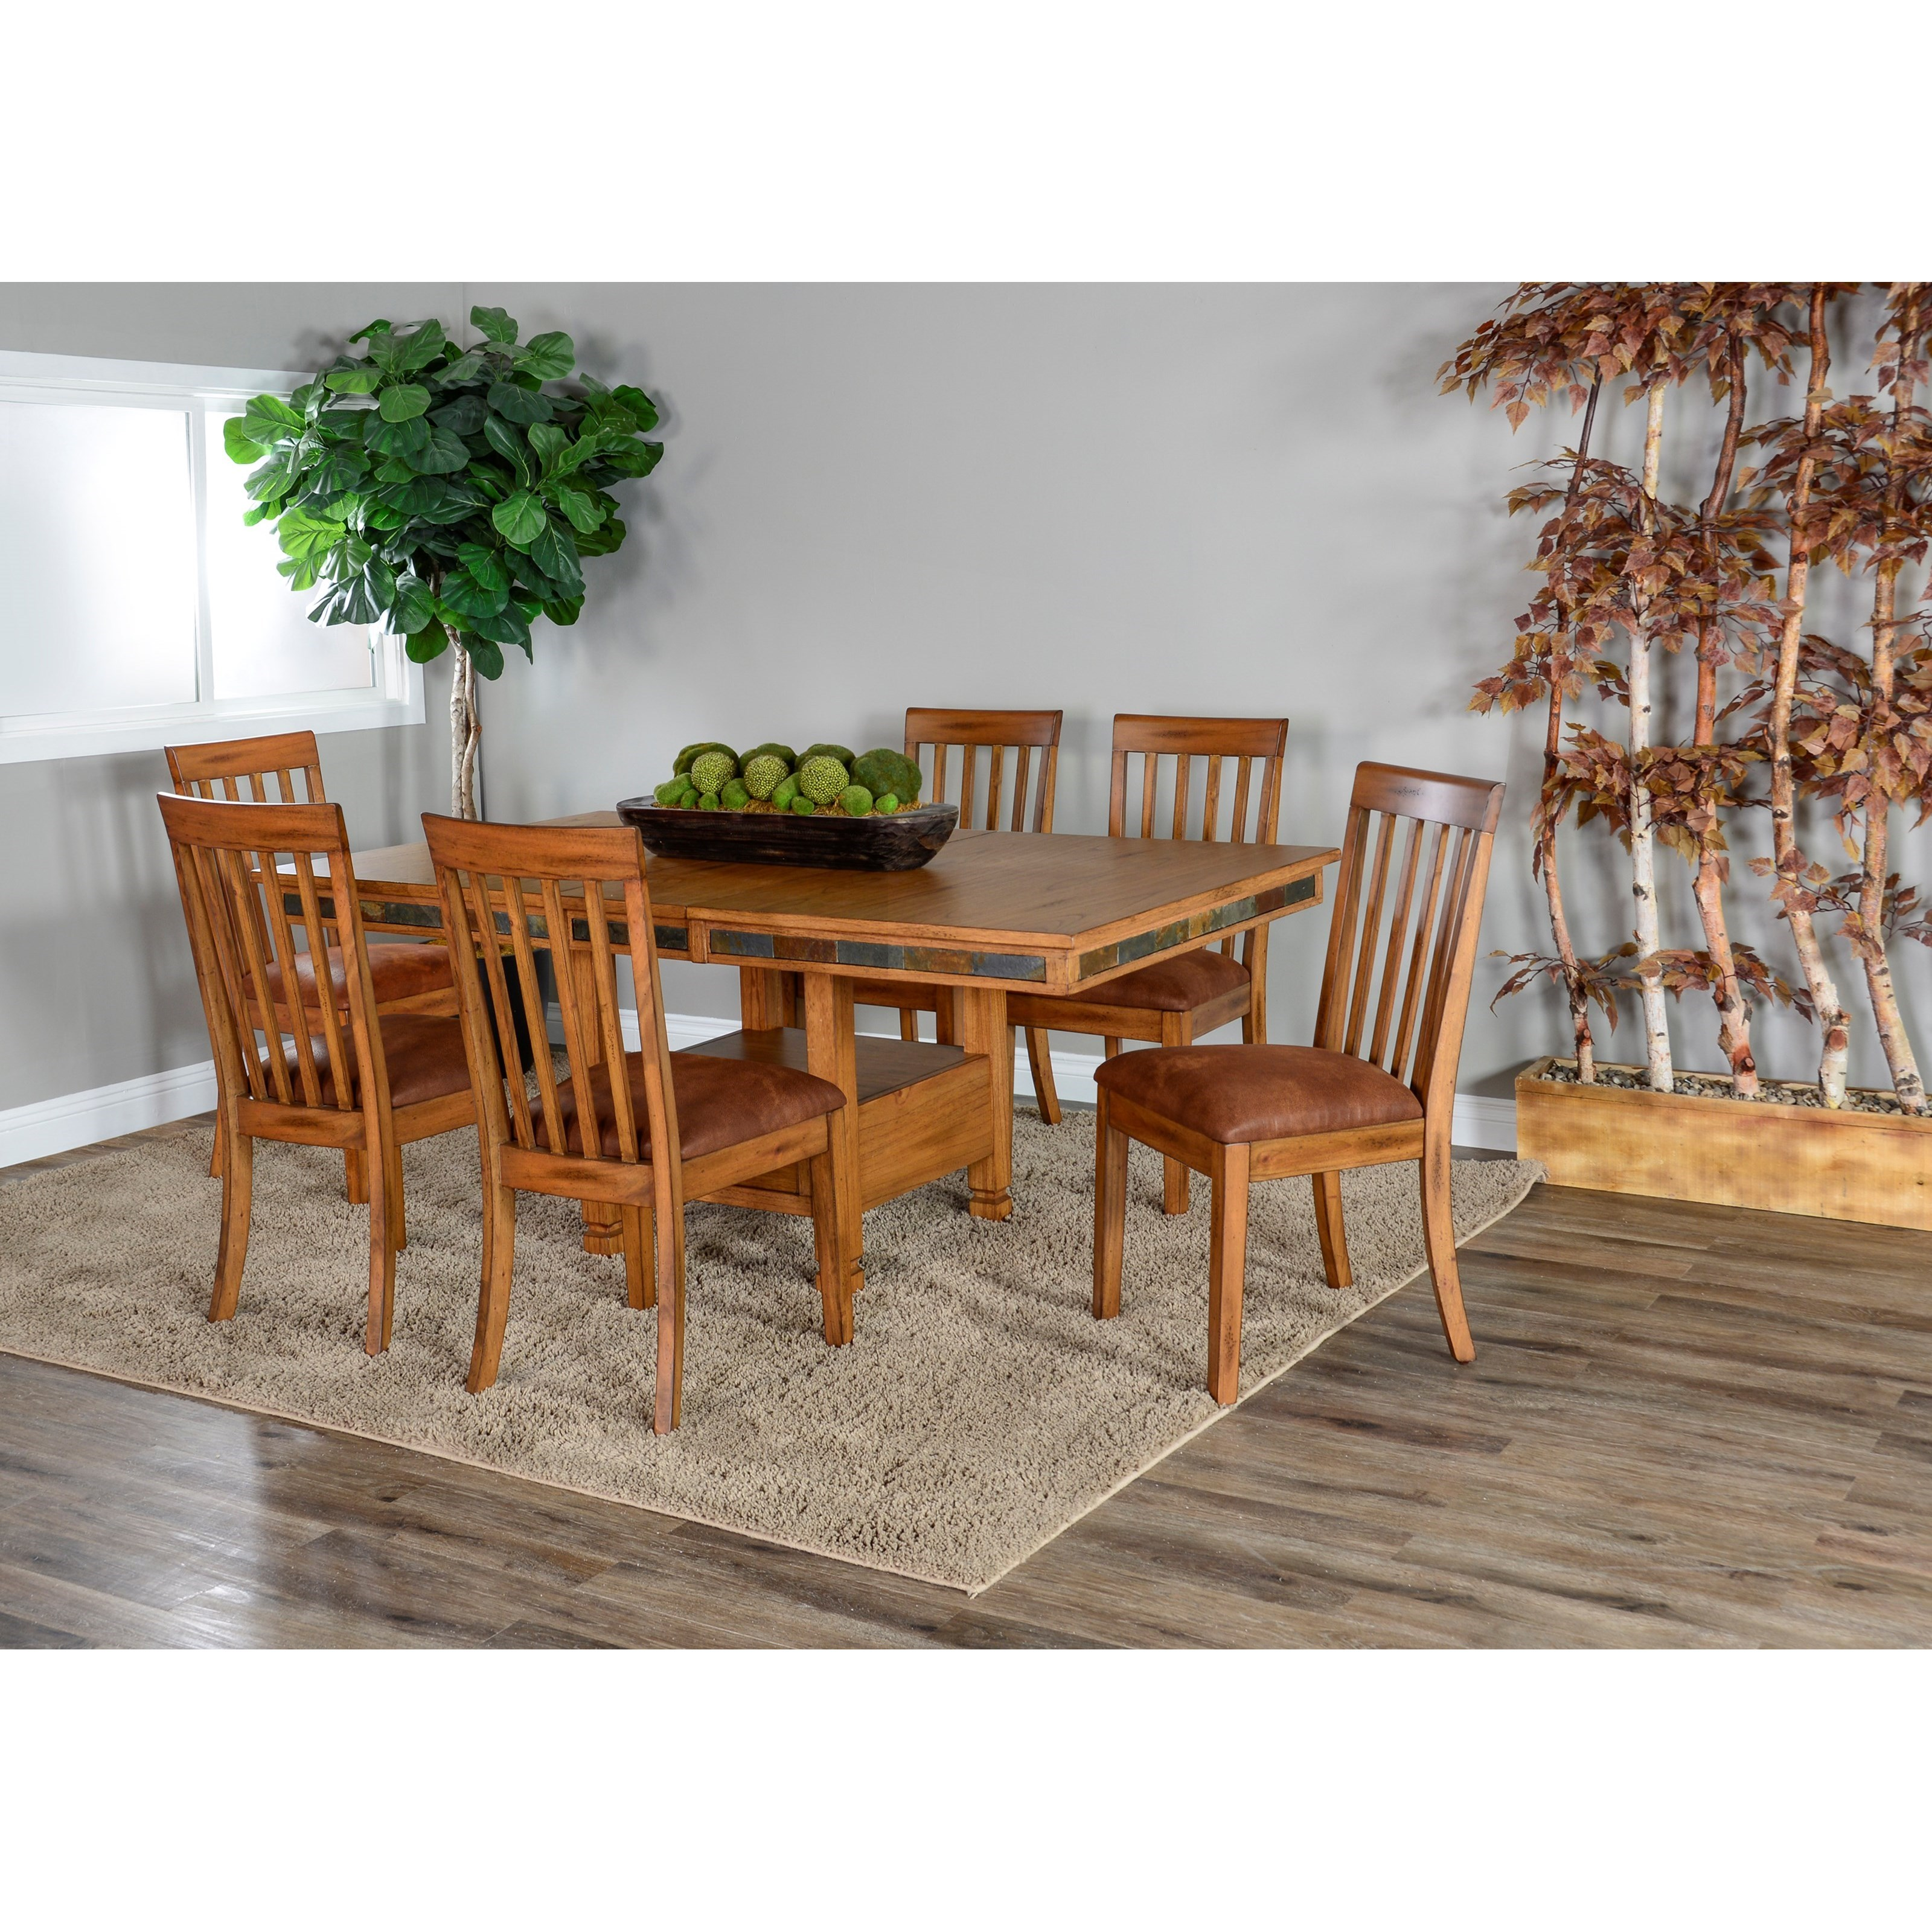 Sunny Designs Sedona 2 Adjustable Butterfly Dining Table ...